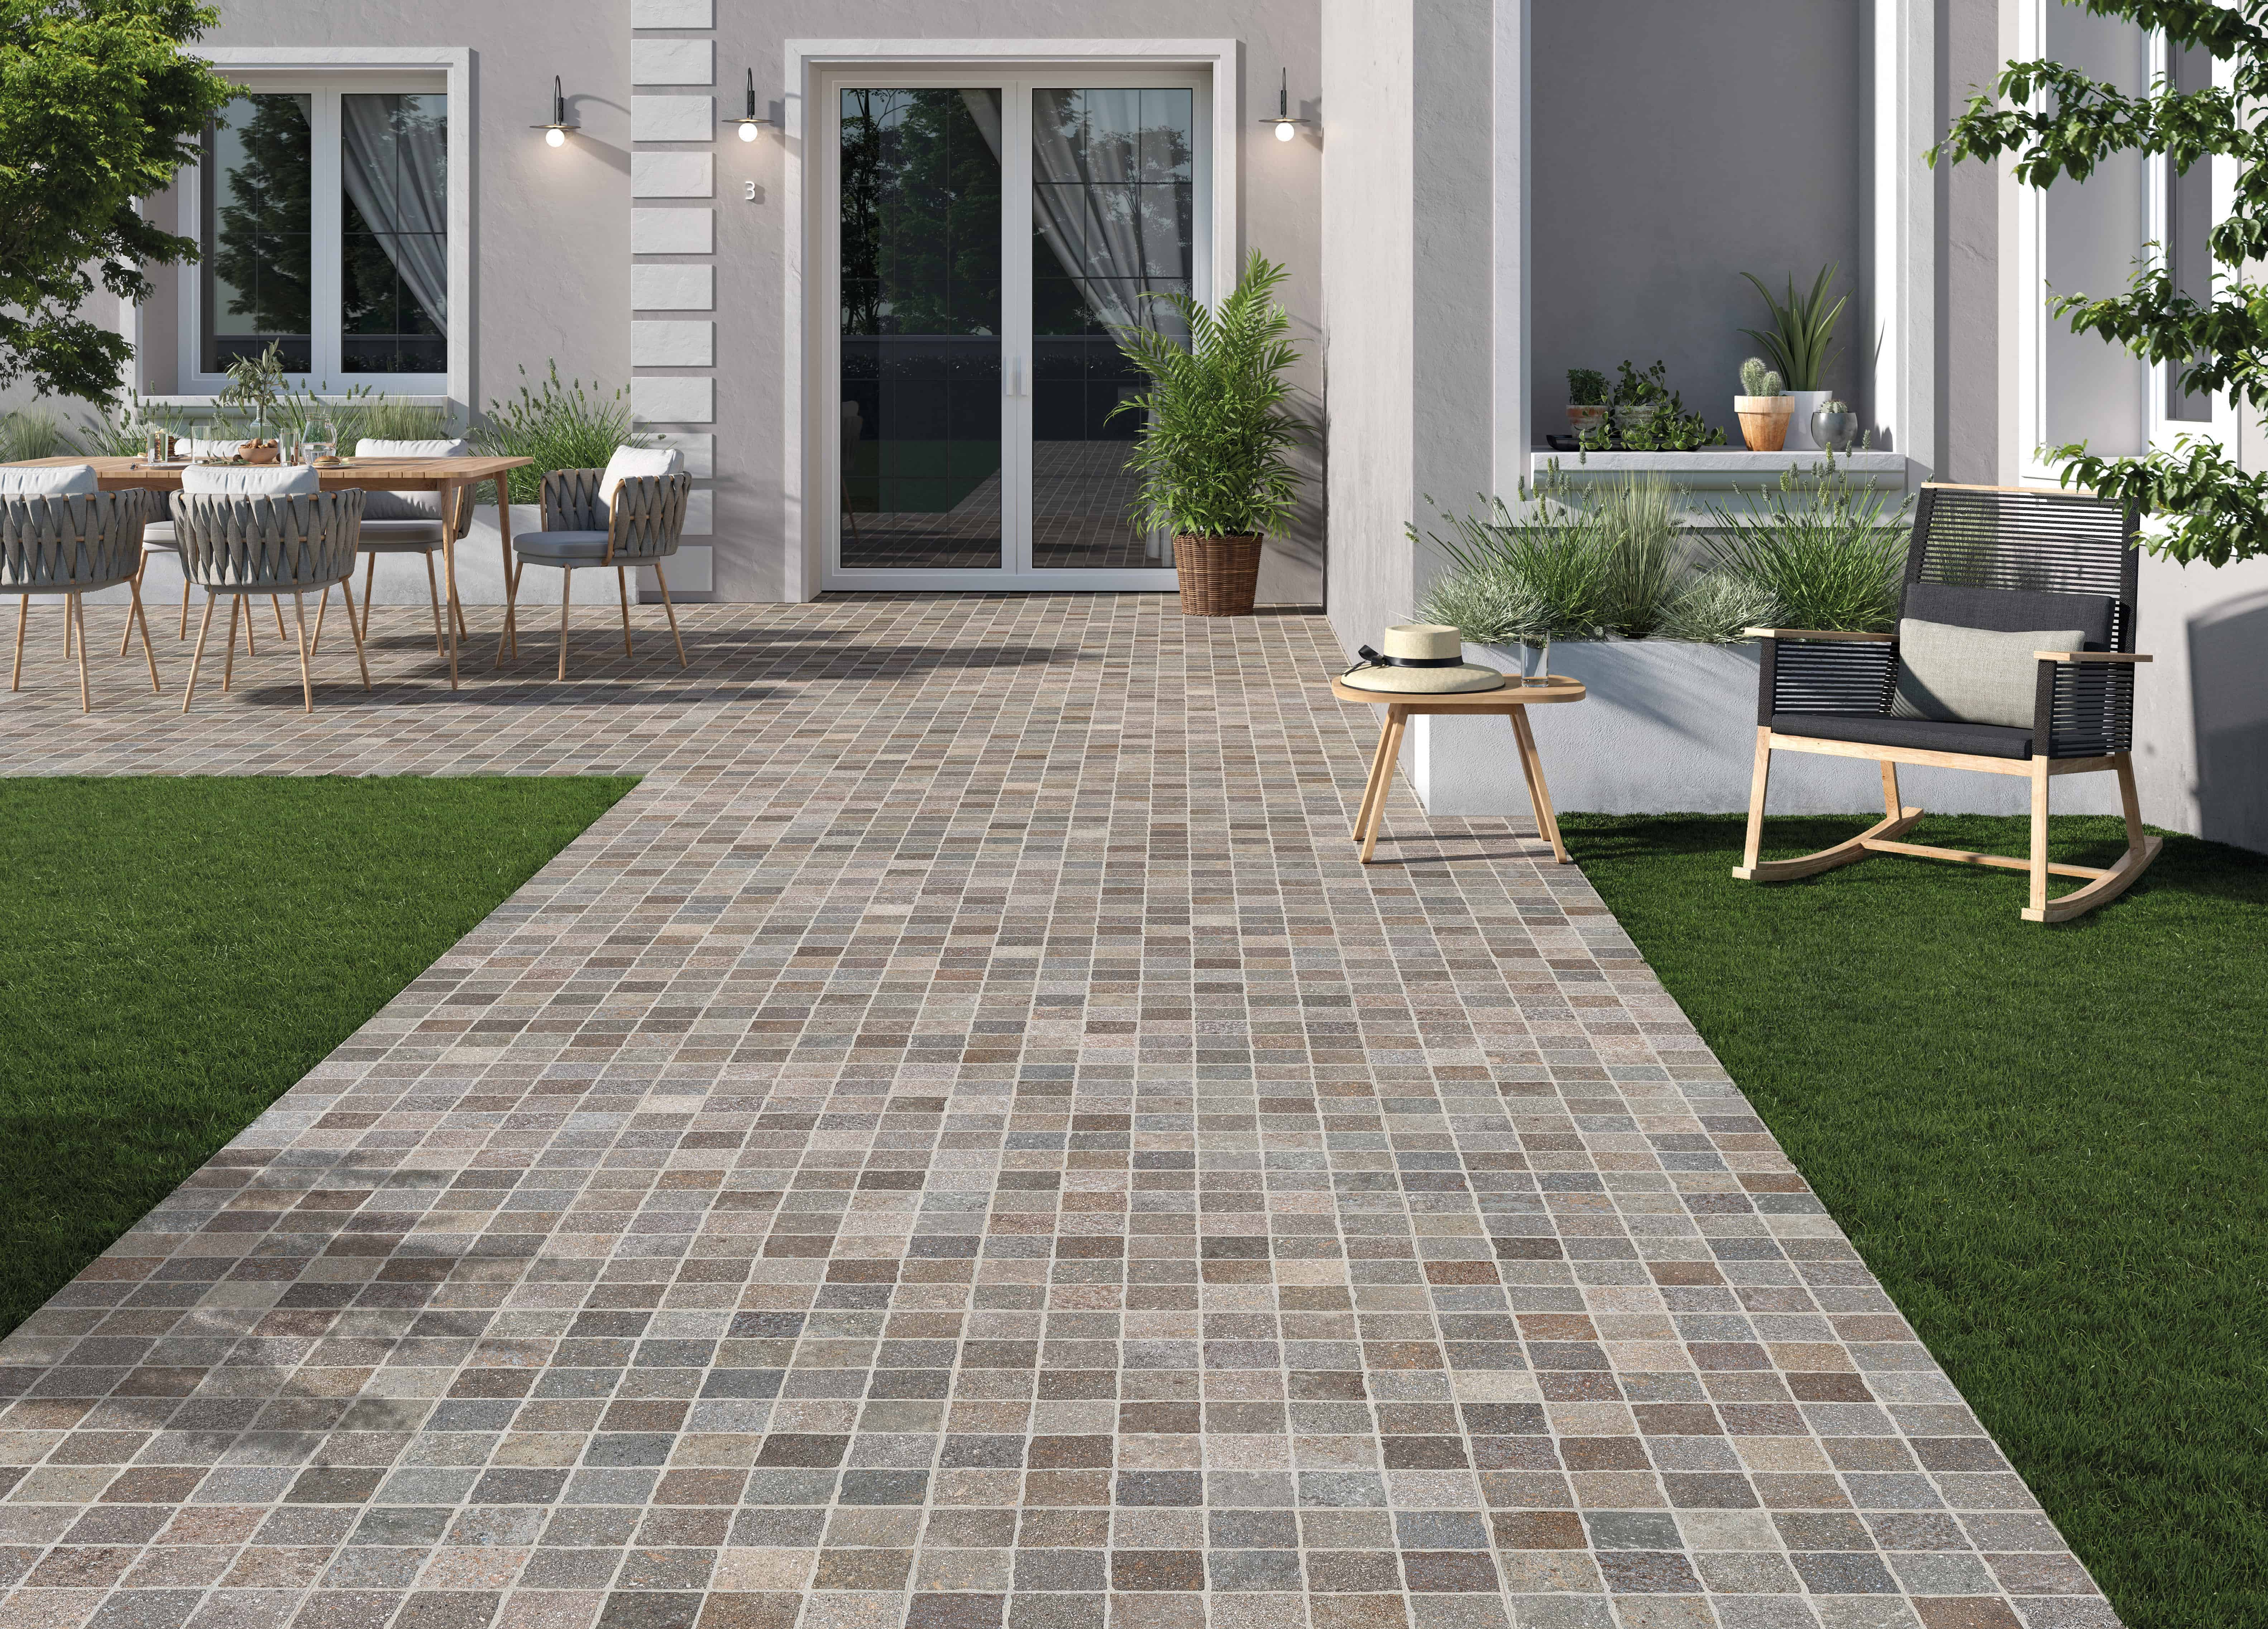 Create a Classic Italian Style with Outdoor Tile | EMC Tiles